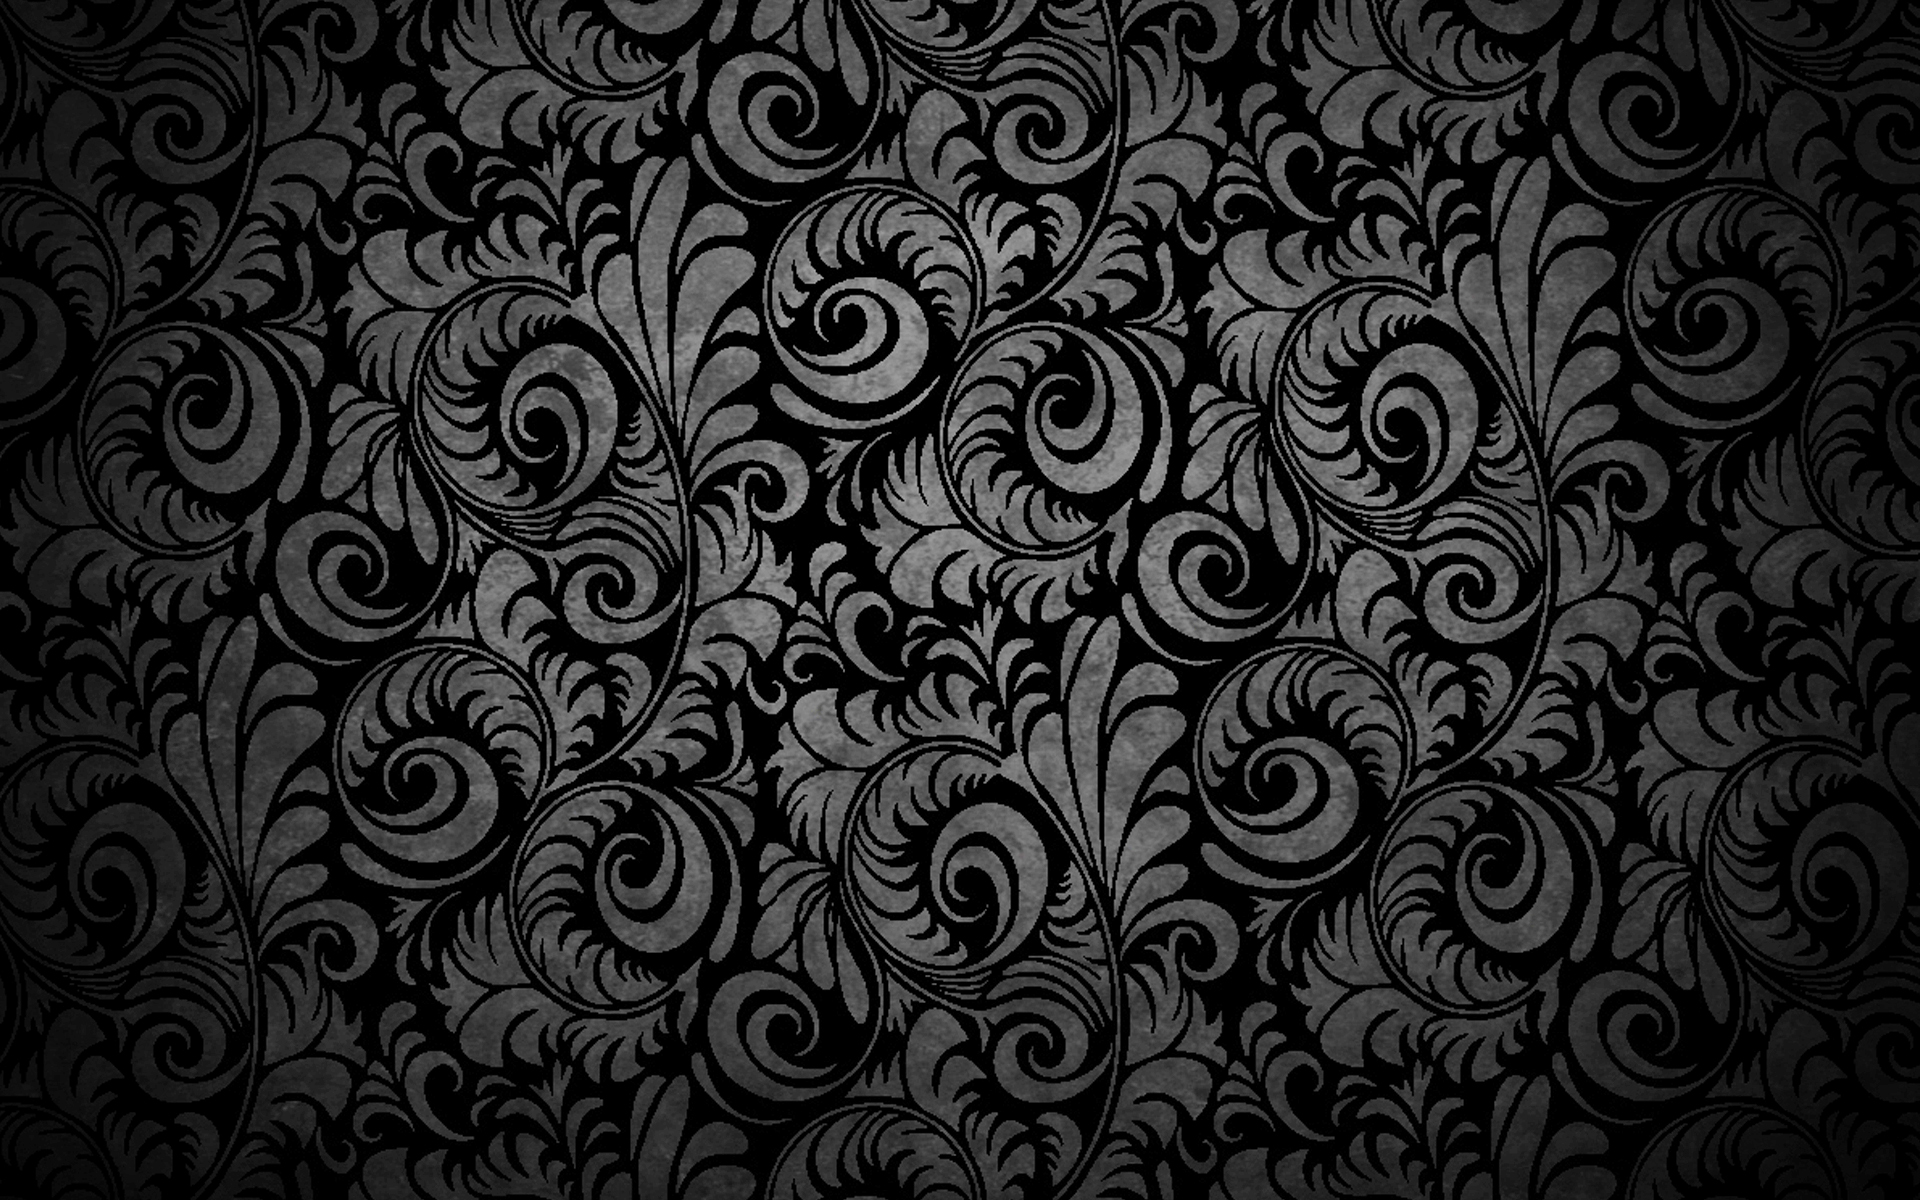 dark-pattern-full-hd-oww-1920×-wallpaper-wp3804386